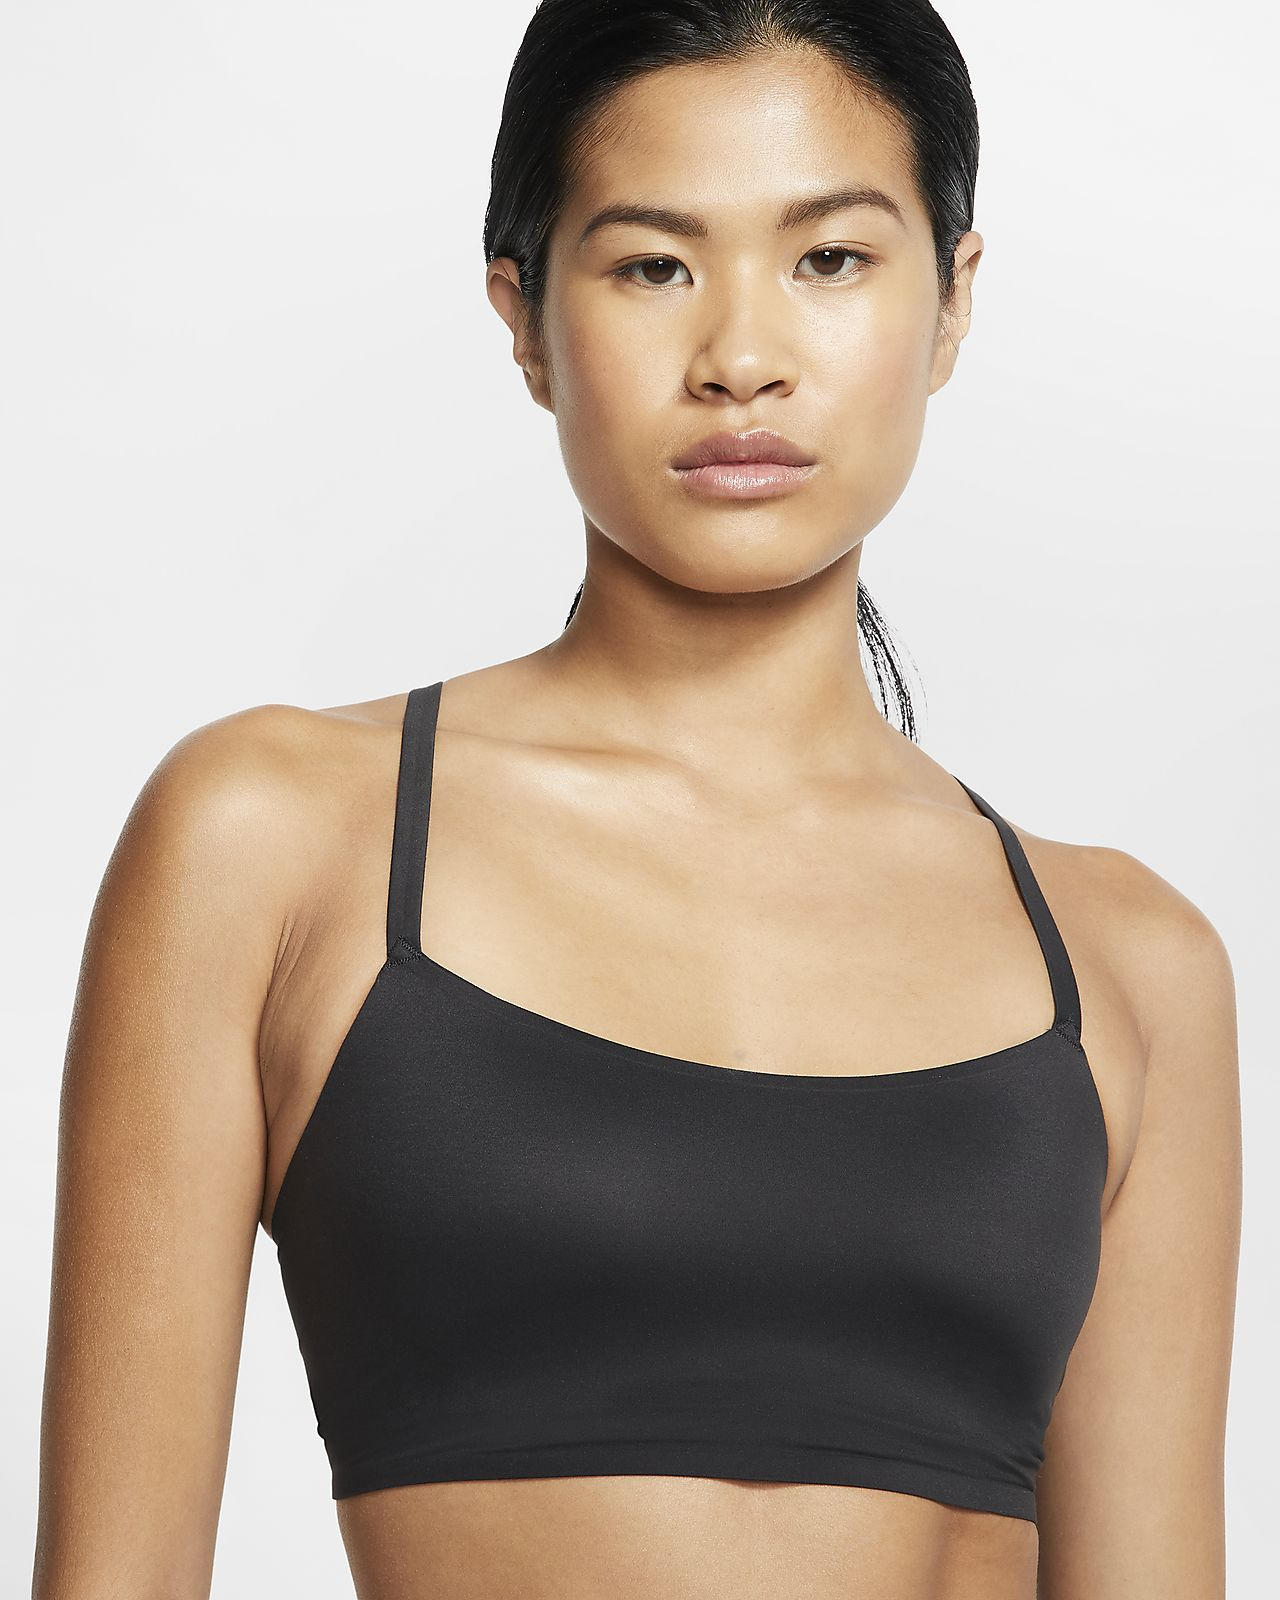 Nike Indy Luxe Women's Light-Support 1-Piece Pad Sports Bra